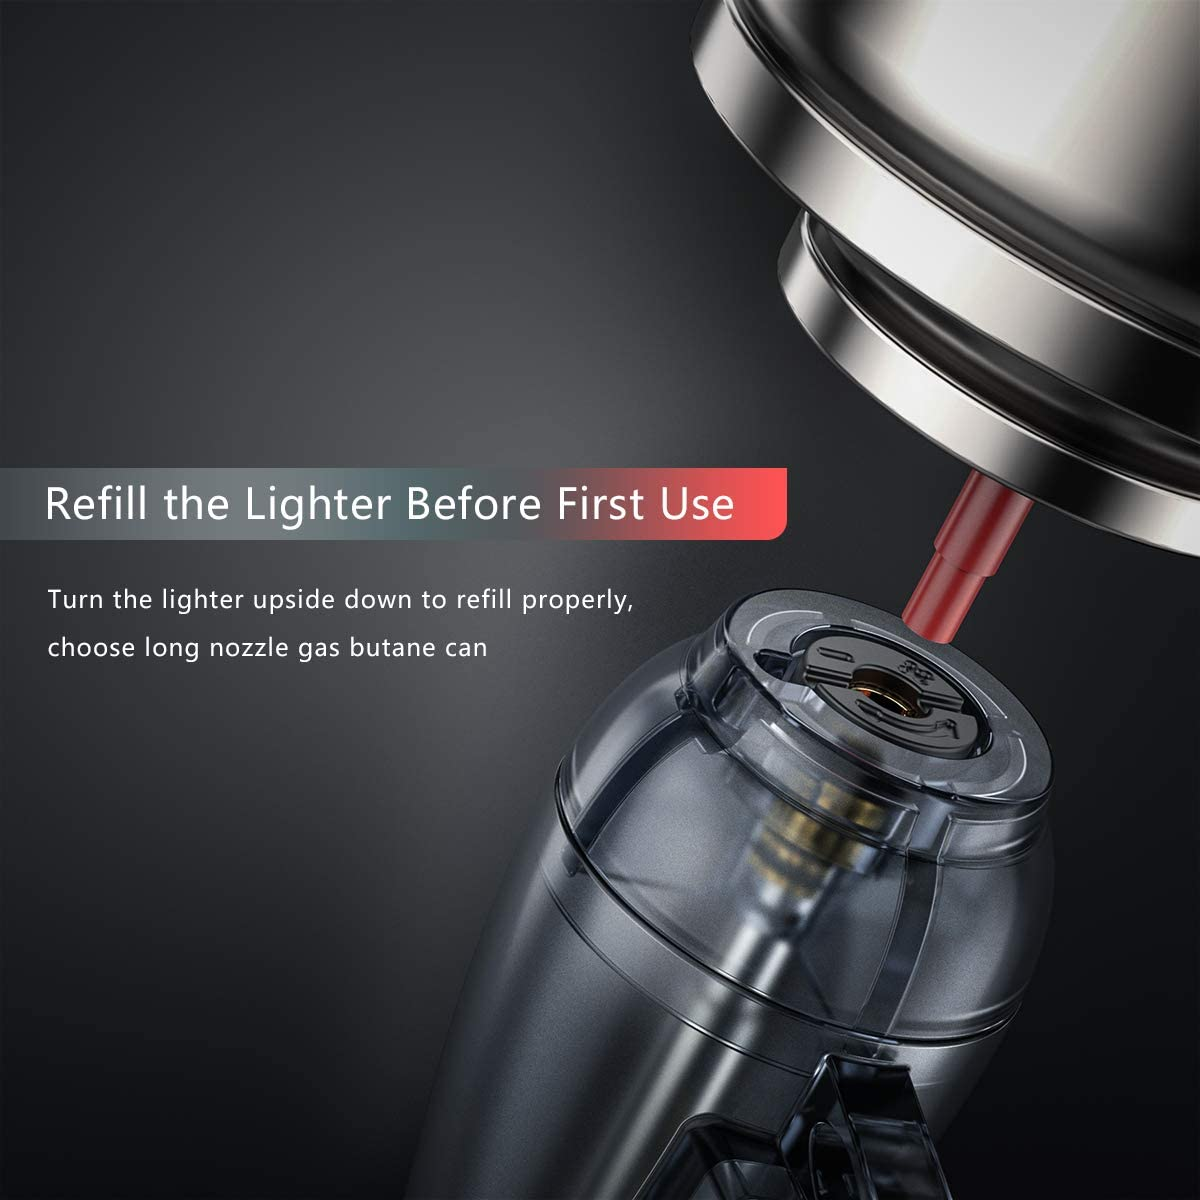 Windproof Torch Lighter VVAY 2 x Turbo Jet Lighters Gas Butane Refillable,Adjustable Flame Sold without Gas